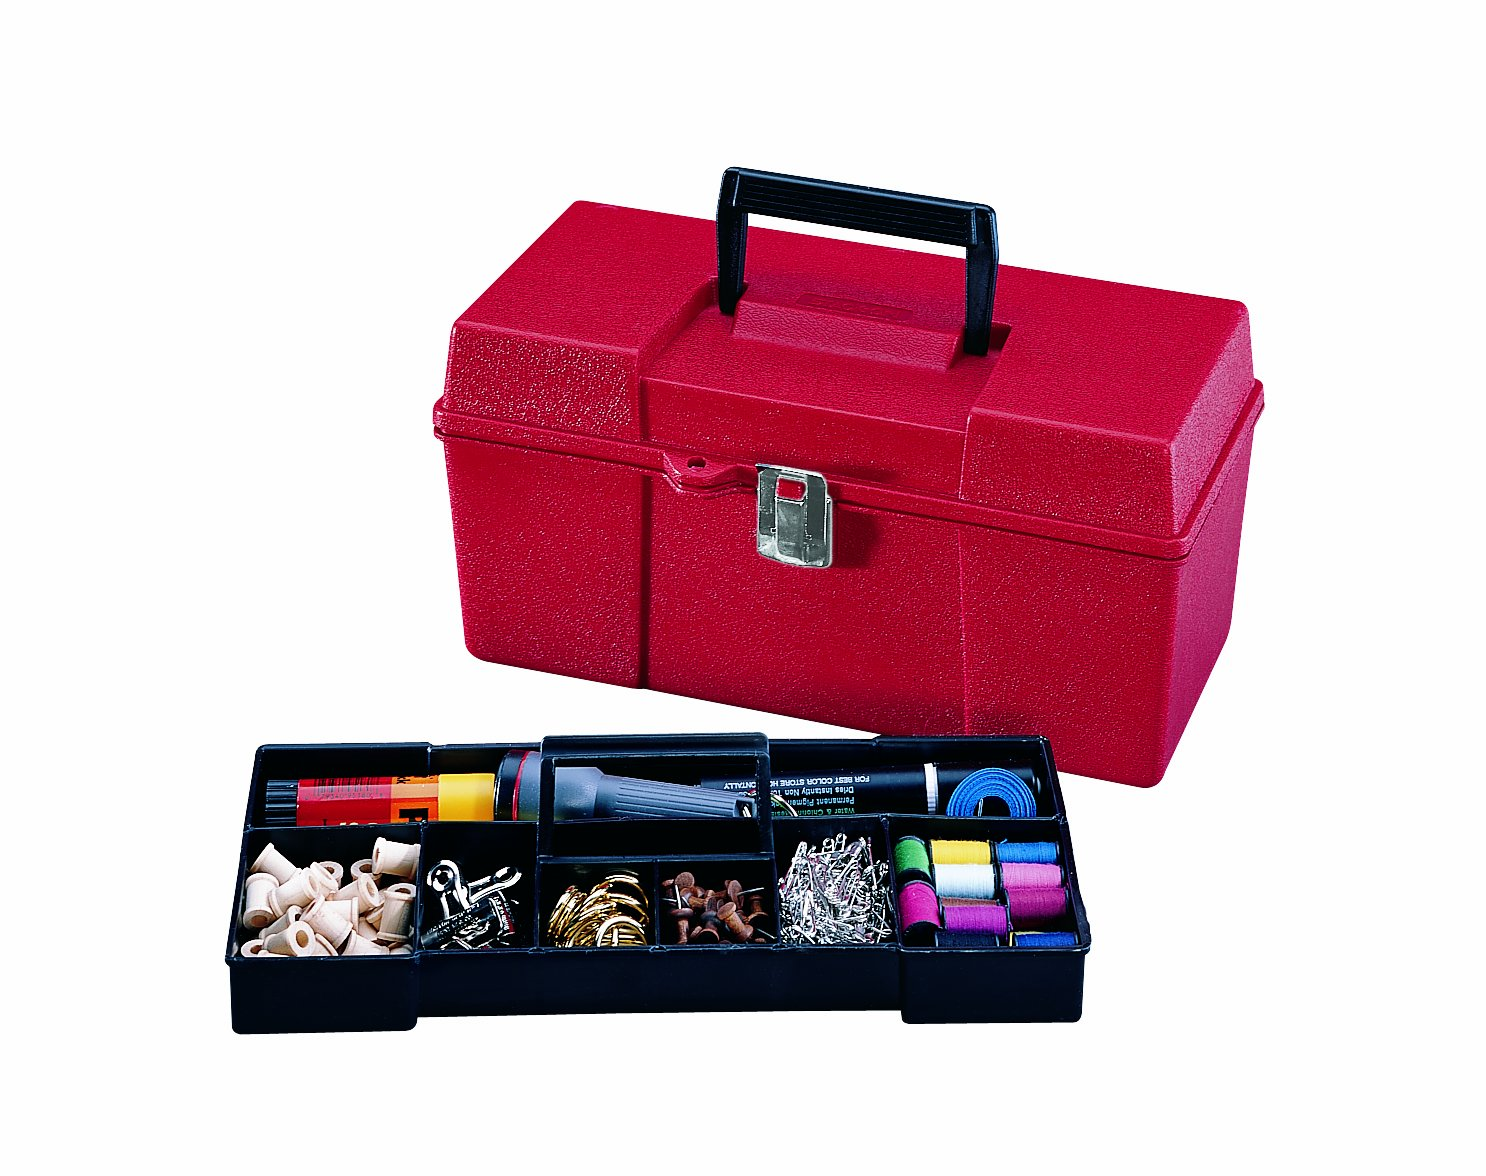 Stack-On GMR-13 13-Inch Multi-Purpose Handy Storage Box with Tote Tray, Red by Stack-On